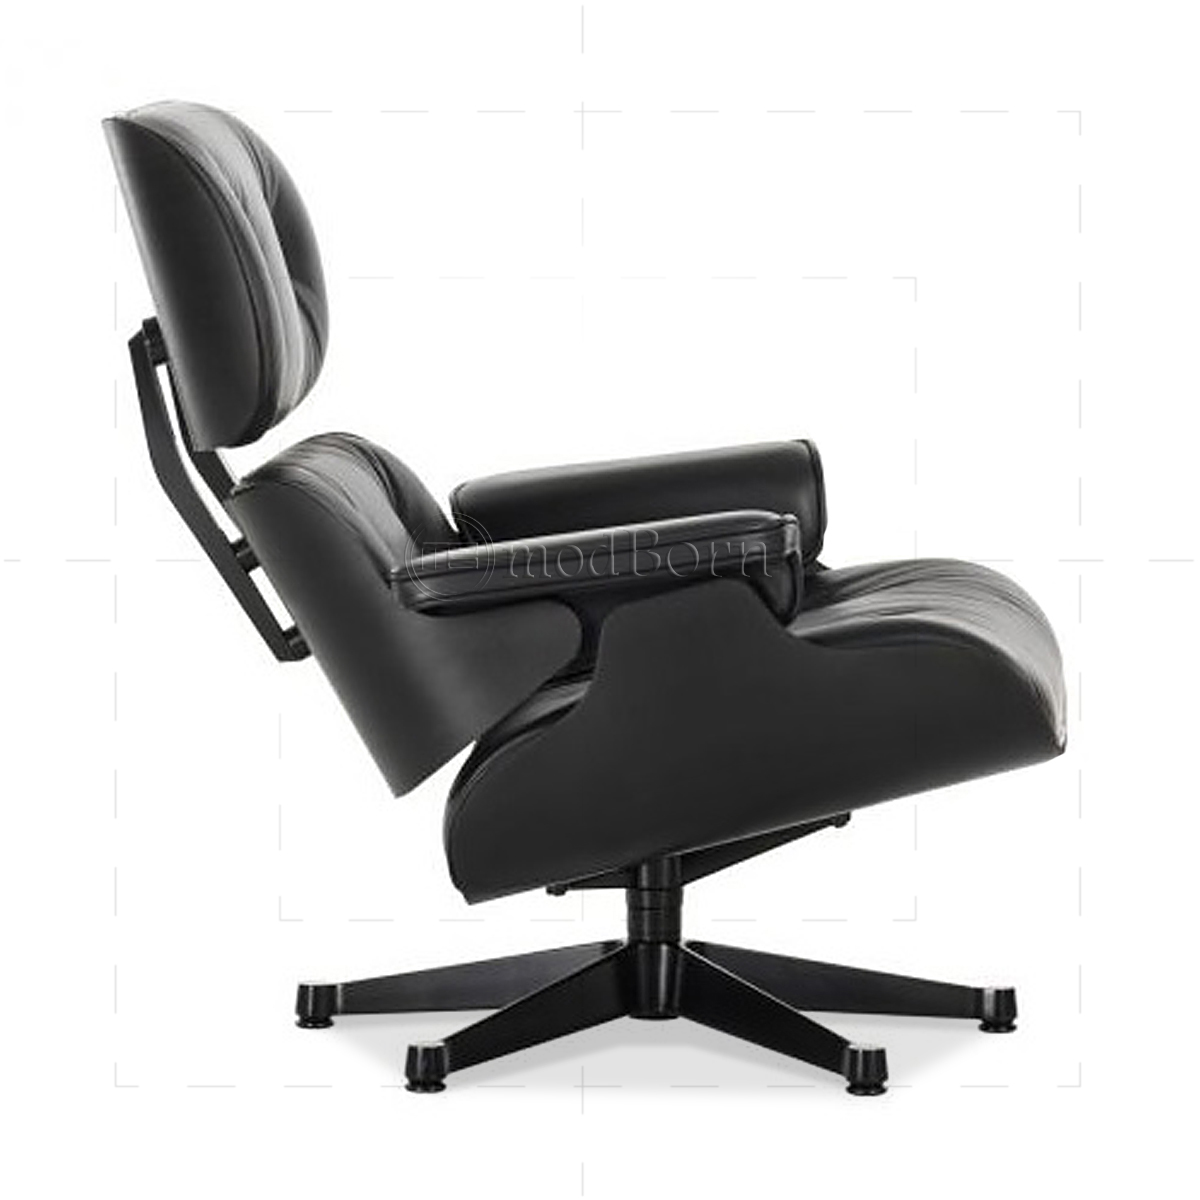 black chair and ottoman ebay teal covers eames style lounge leather wood